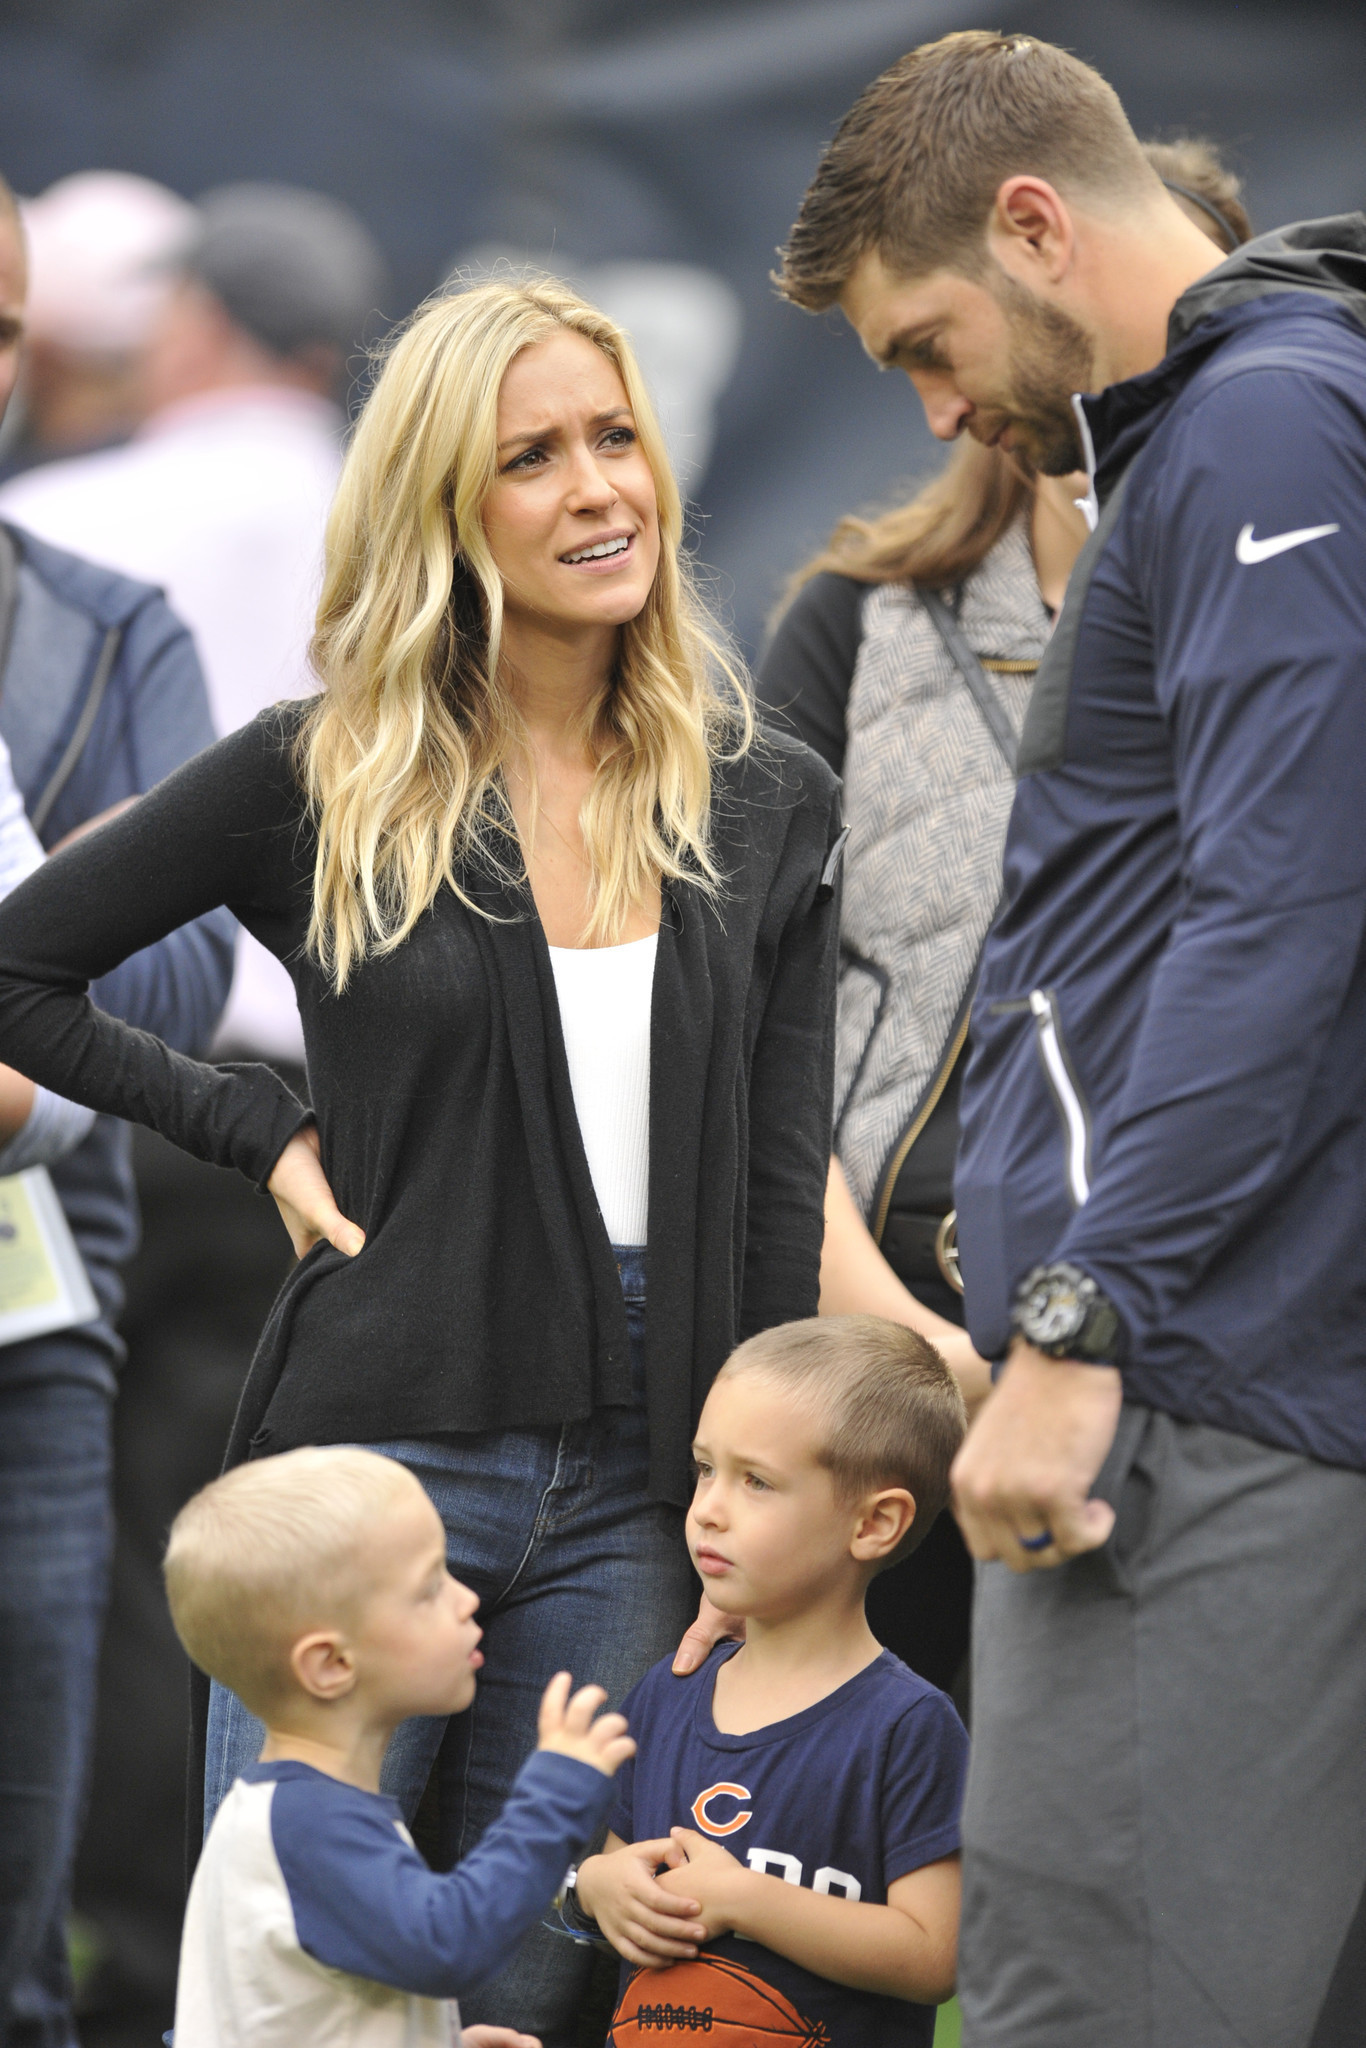 Kristin Cavallari criticized for post comparing Jay Cutler ...